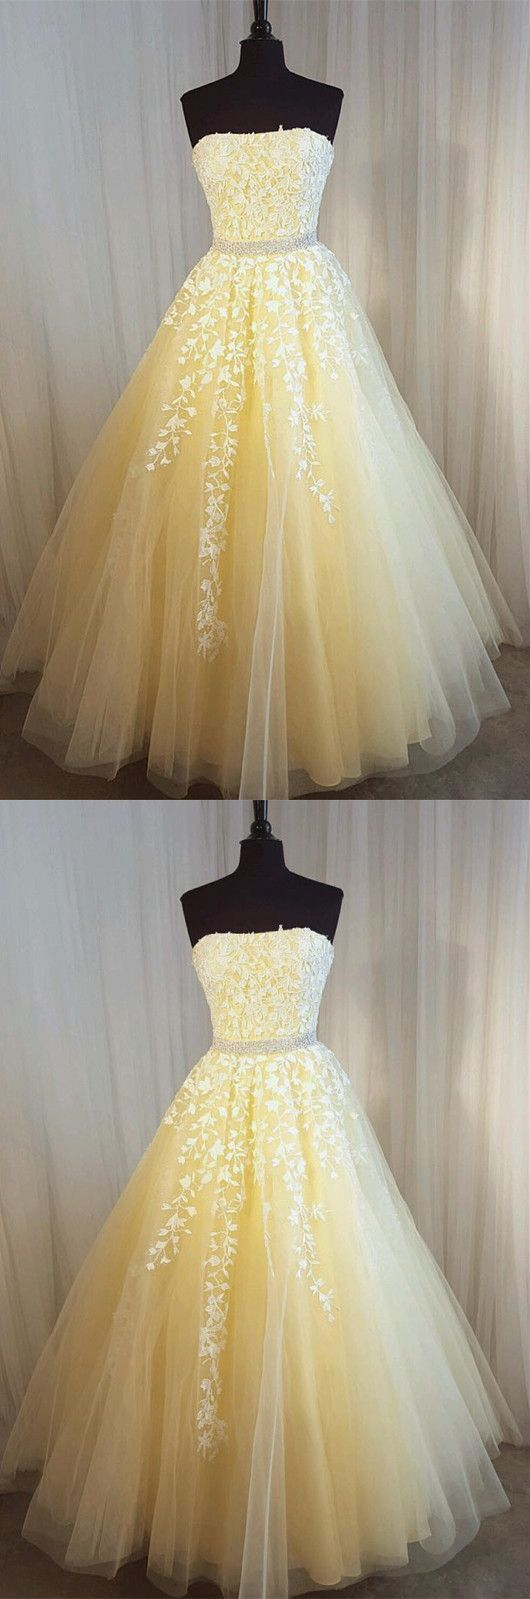 Strapless A-line Tulle Prom Dress Lace Appliques Women